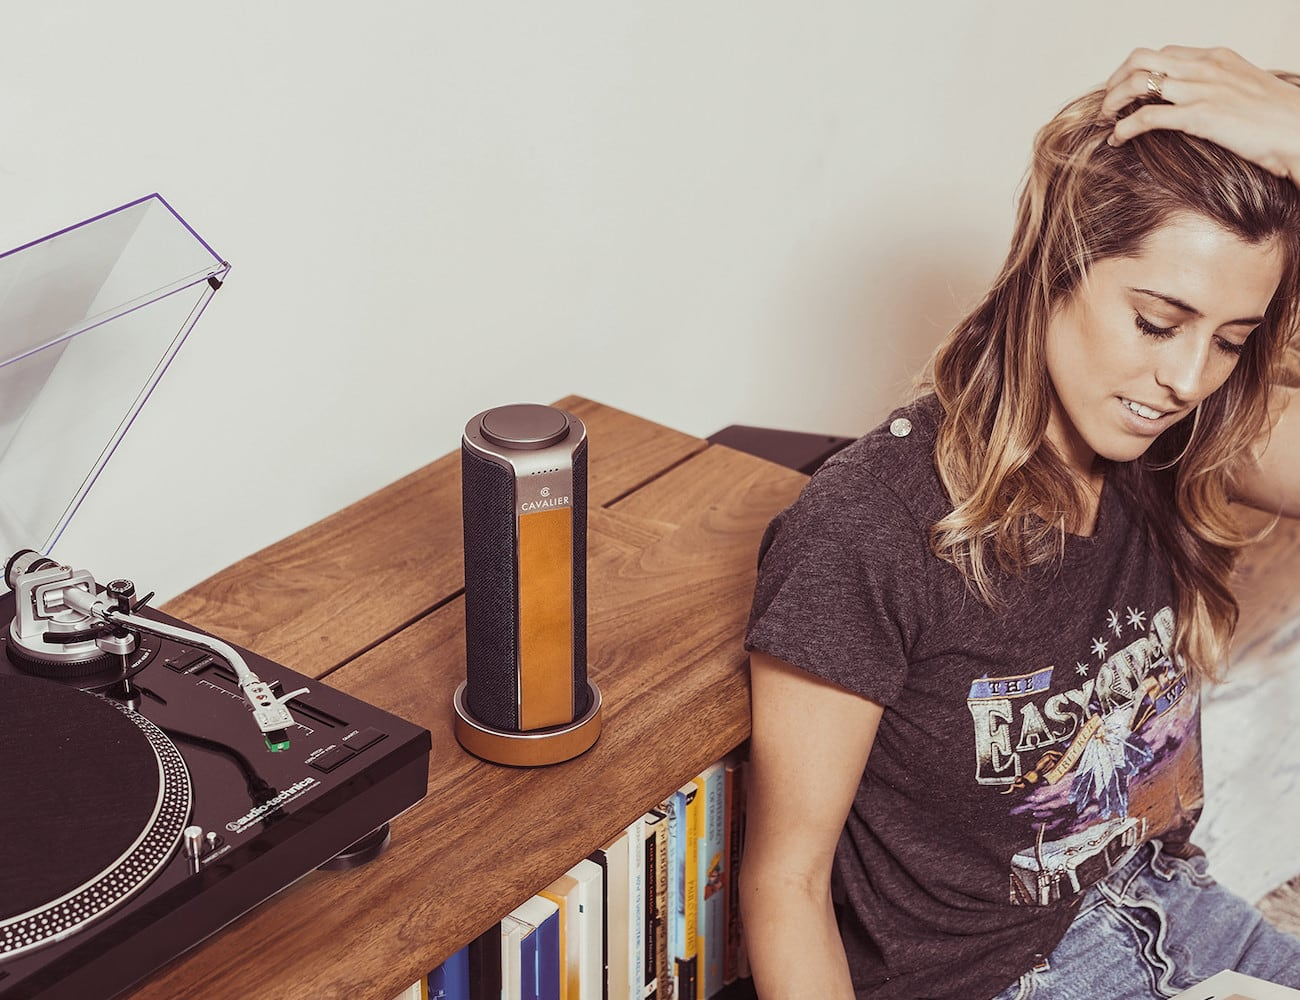 Cavalier Maverick Portable Alexa Speaker System gives you hands-free control loading=